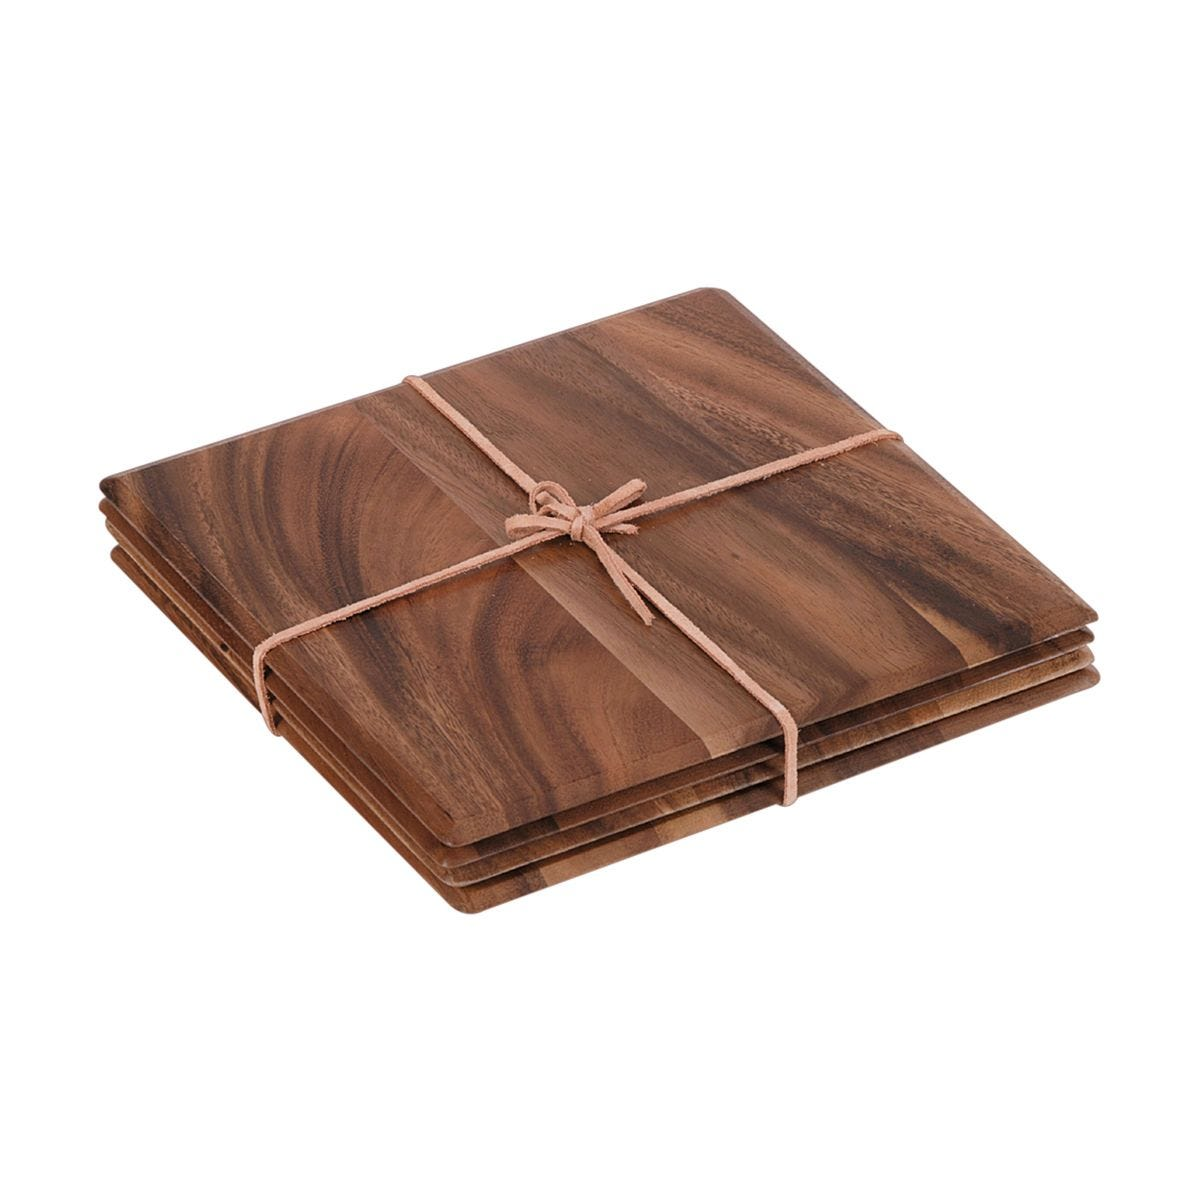 T&G Wooden Placemats - Set of 4